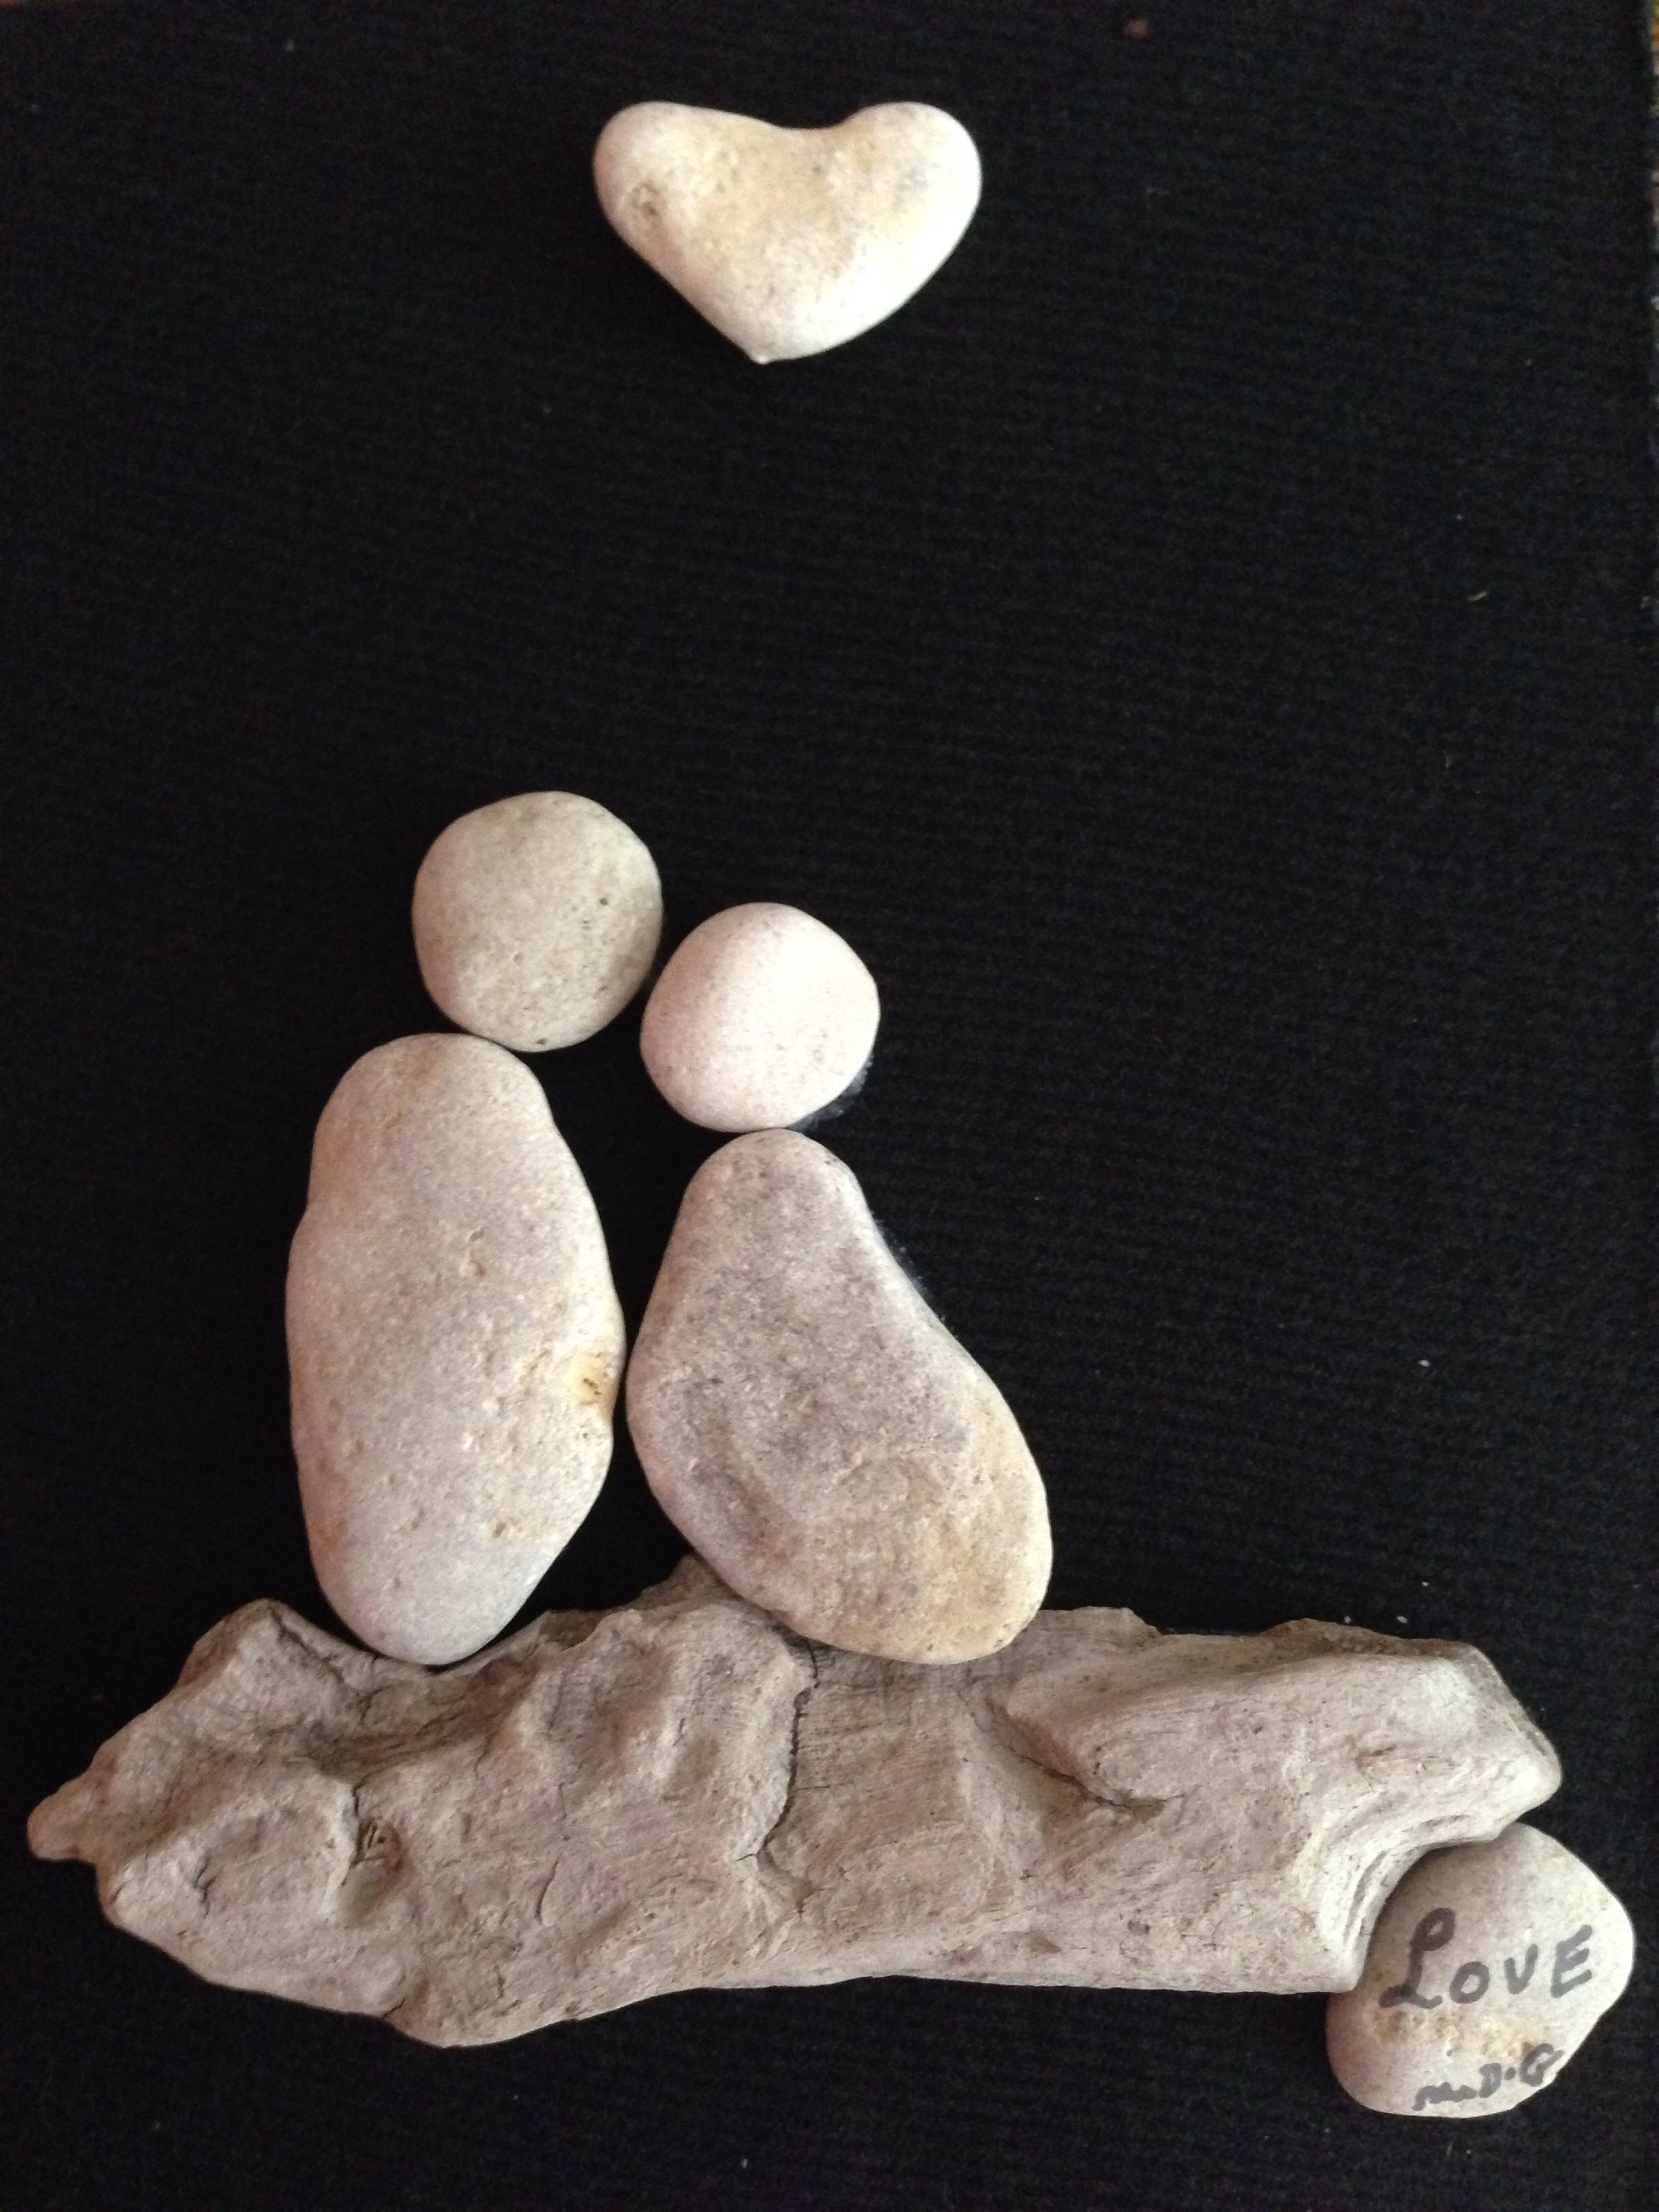 """Pebble Art """" Love"""" by Denise Gray. For sale."""